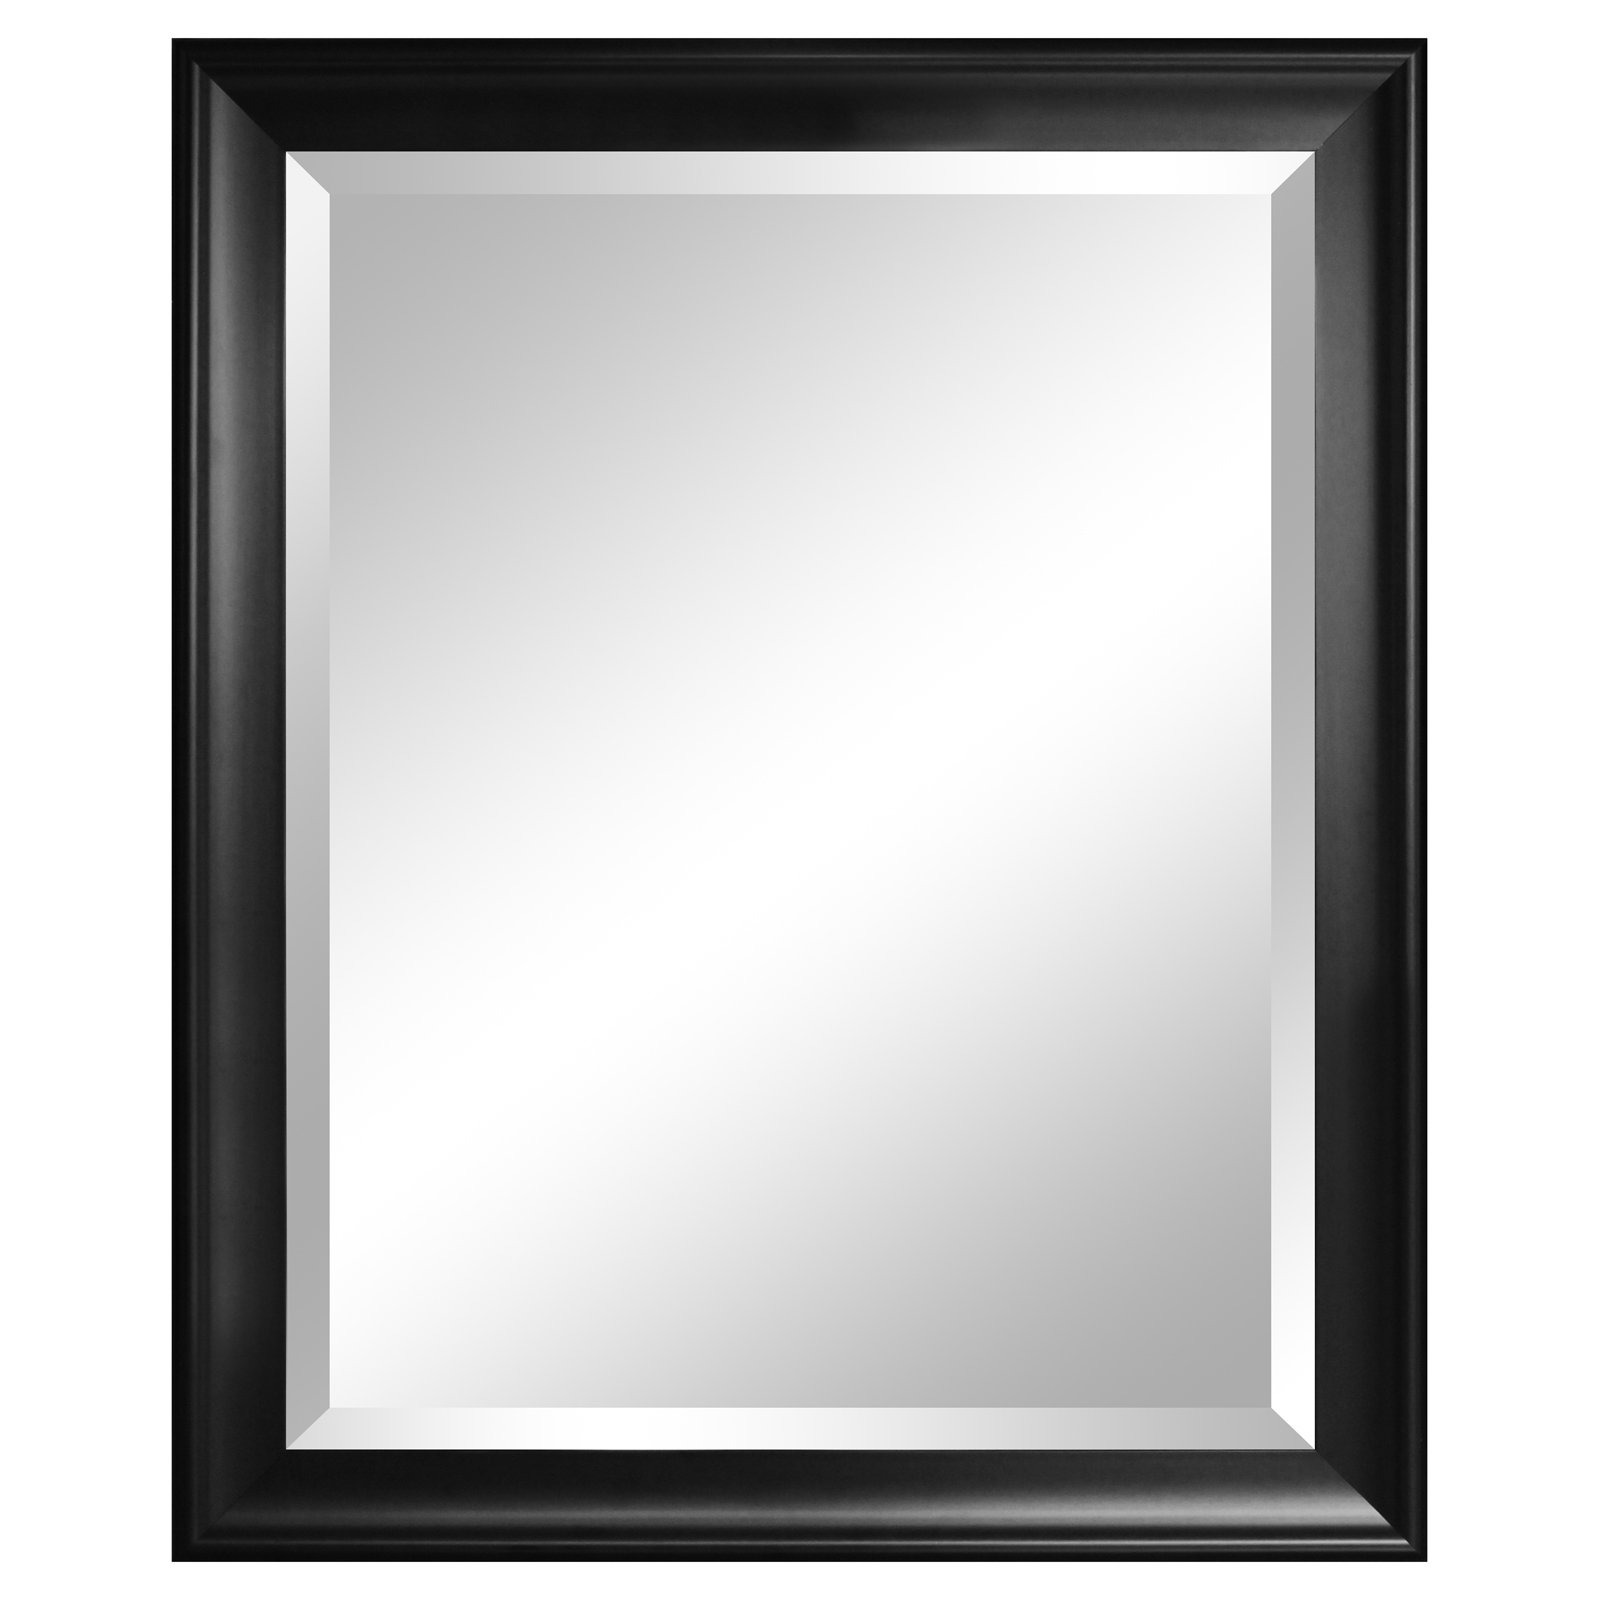 Symphony Black Beveled Wall Mirror 28W x 34H in. by Alpine Art and Mirror